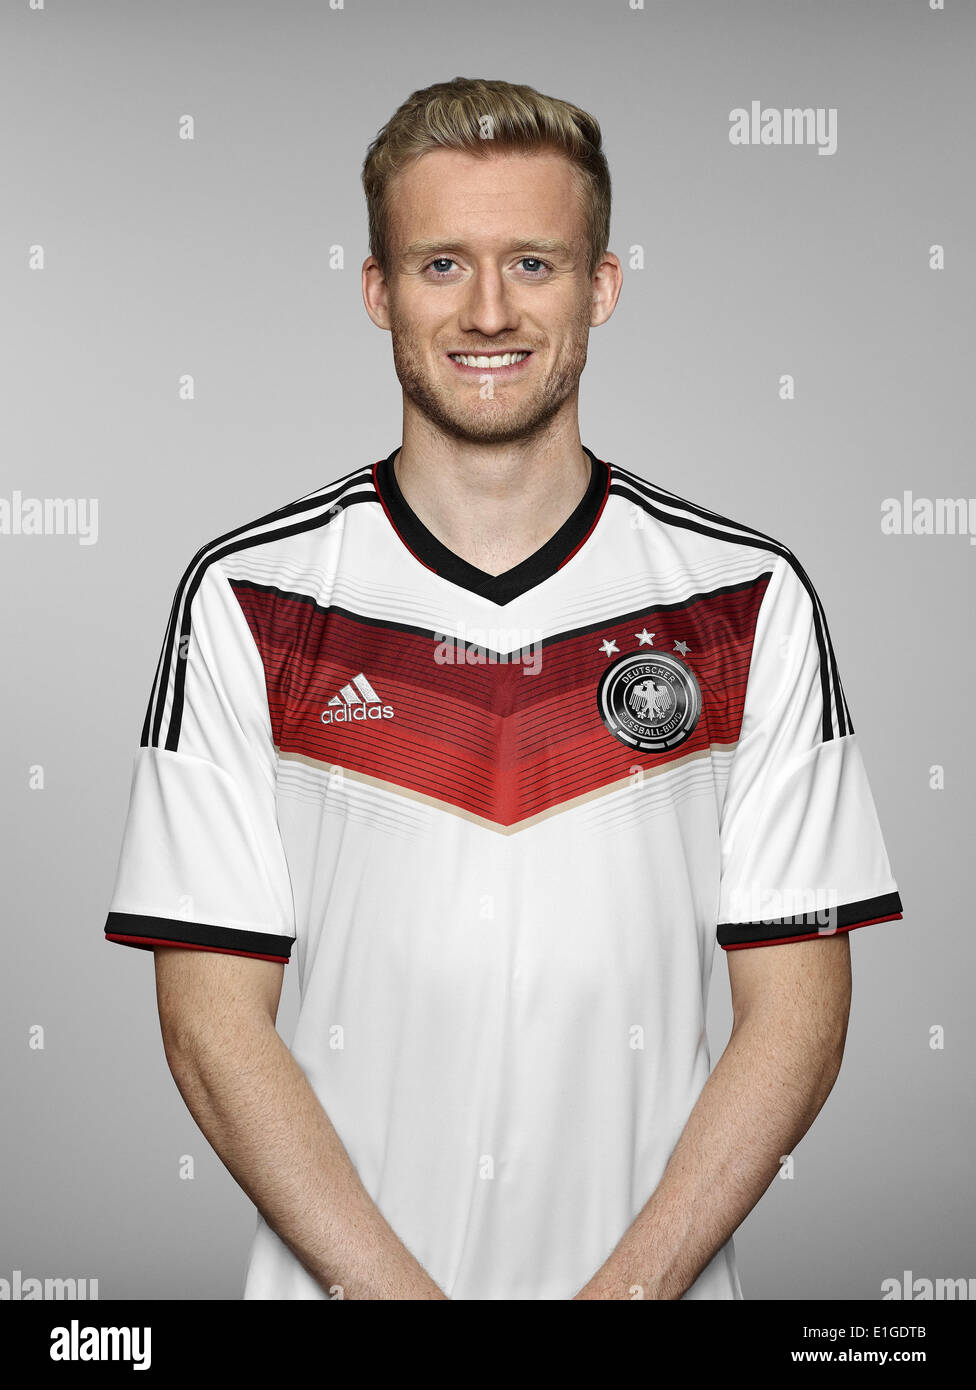 FIFA World Cup 2014 - photocall Team Germany, 24 May 2014 in Passeier, Italy: Andre Schuerrle. Photo credit: Bongarts/Getty Images/German Football Association/dpa (editorial use only) - Stock Image